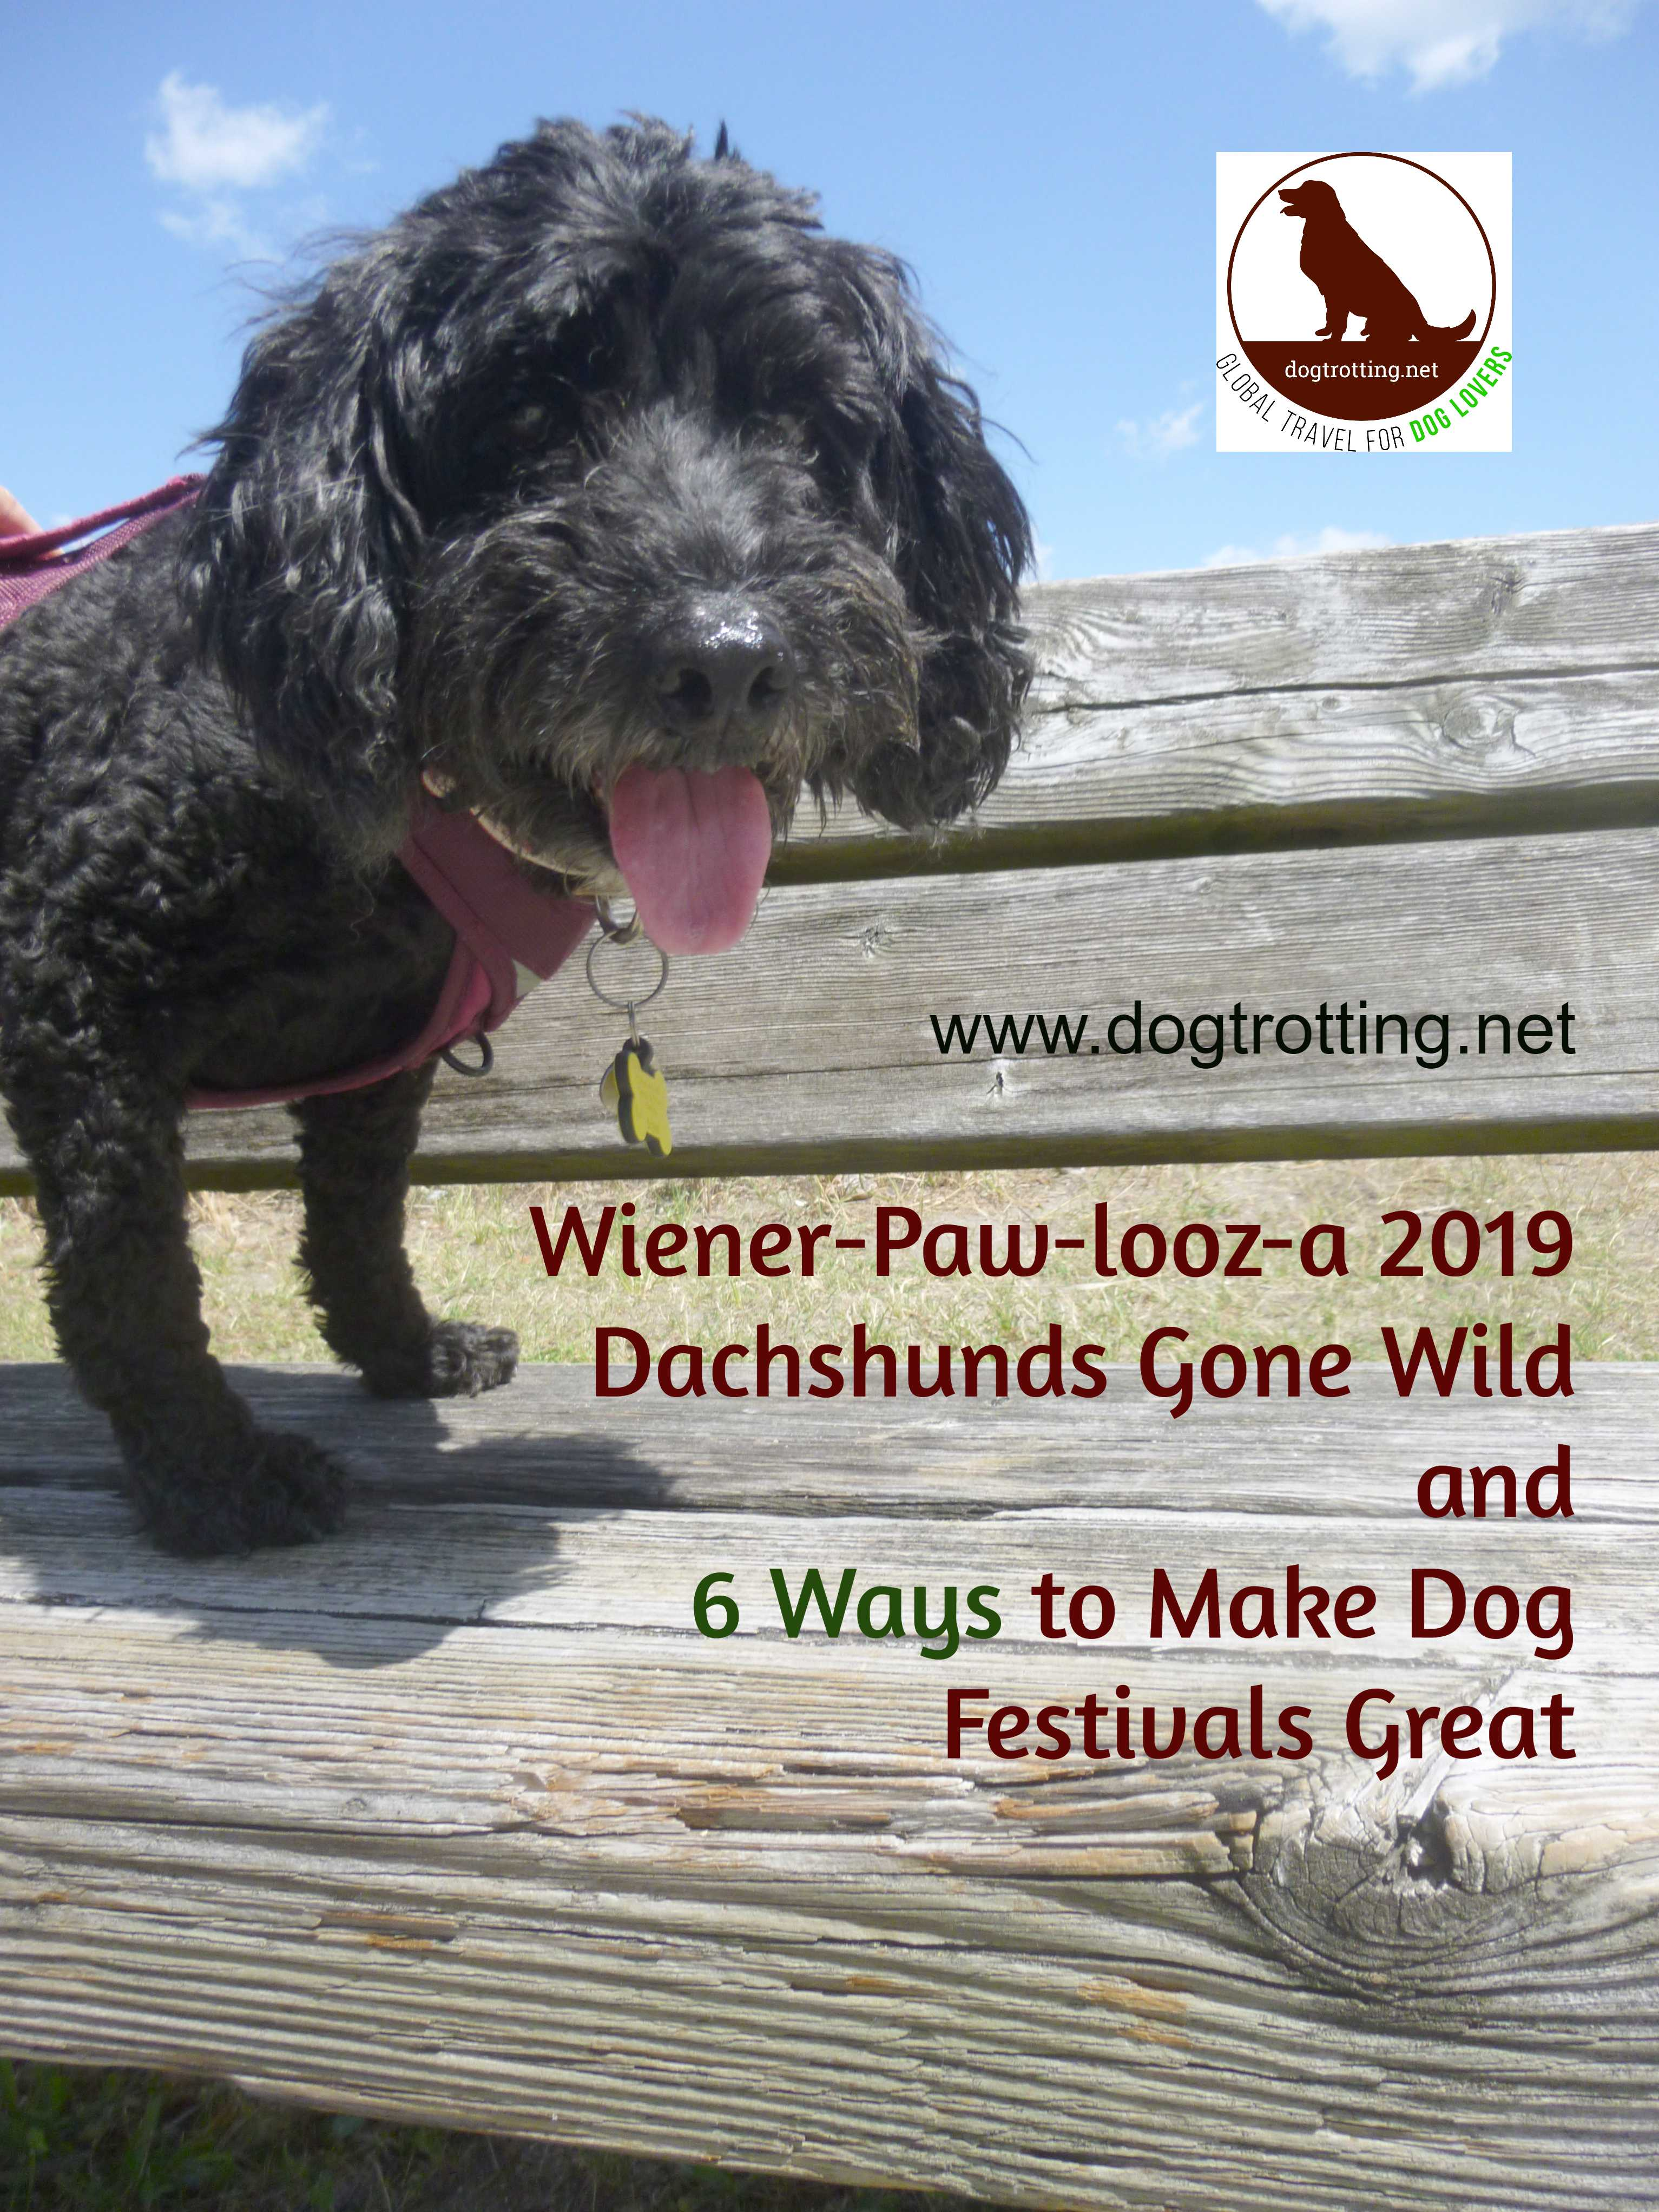 Wiener-paw-looz-a Wiener-paw-rocks! Dachshunds Go Wild & 6 Ways to Make Dog Festivals Great